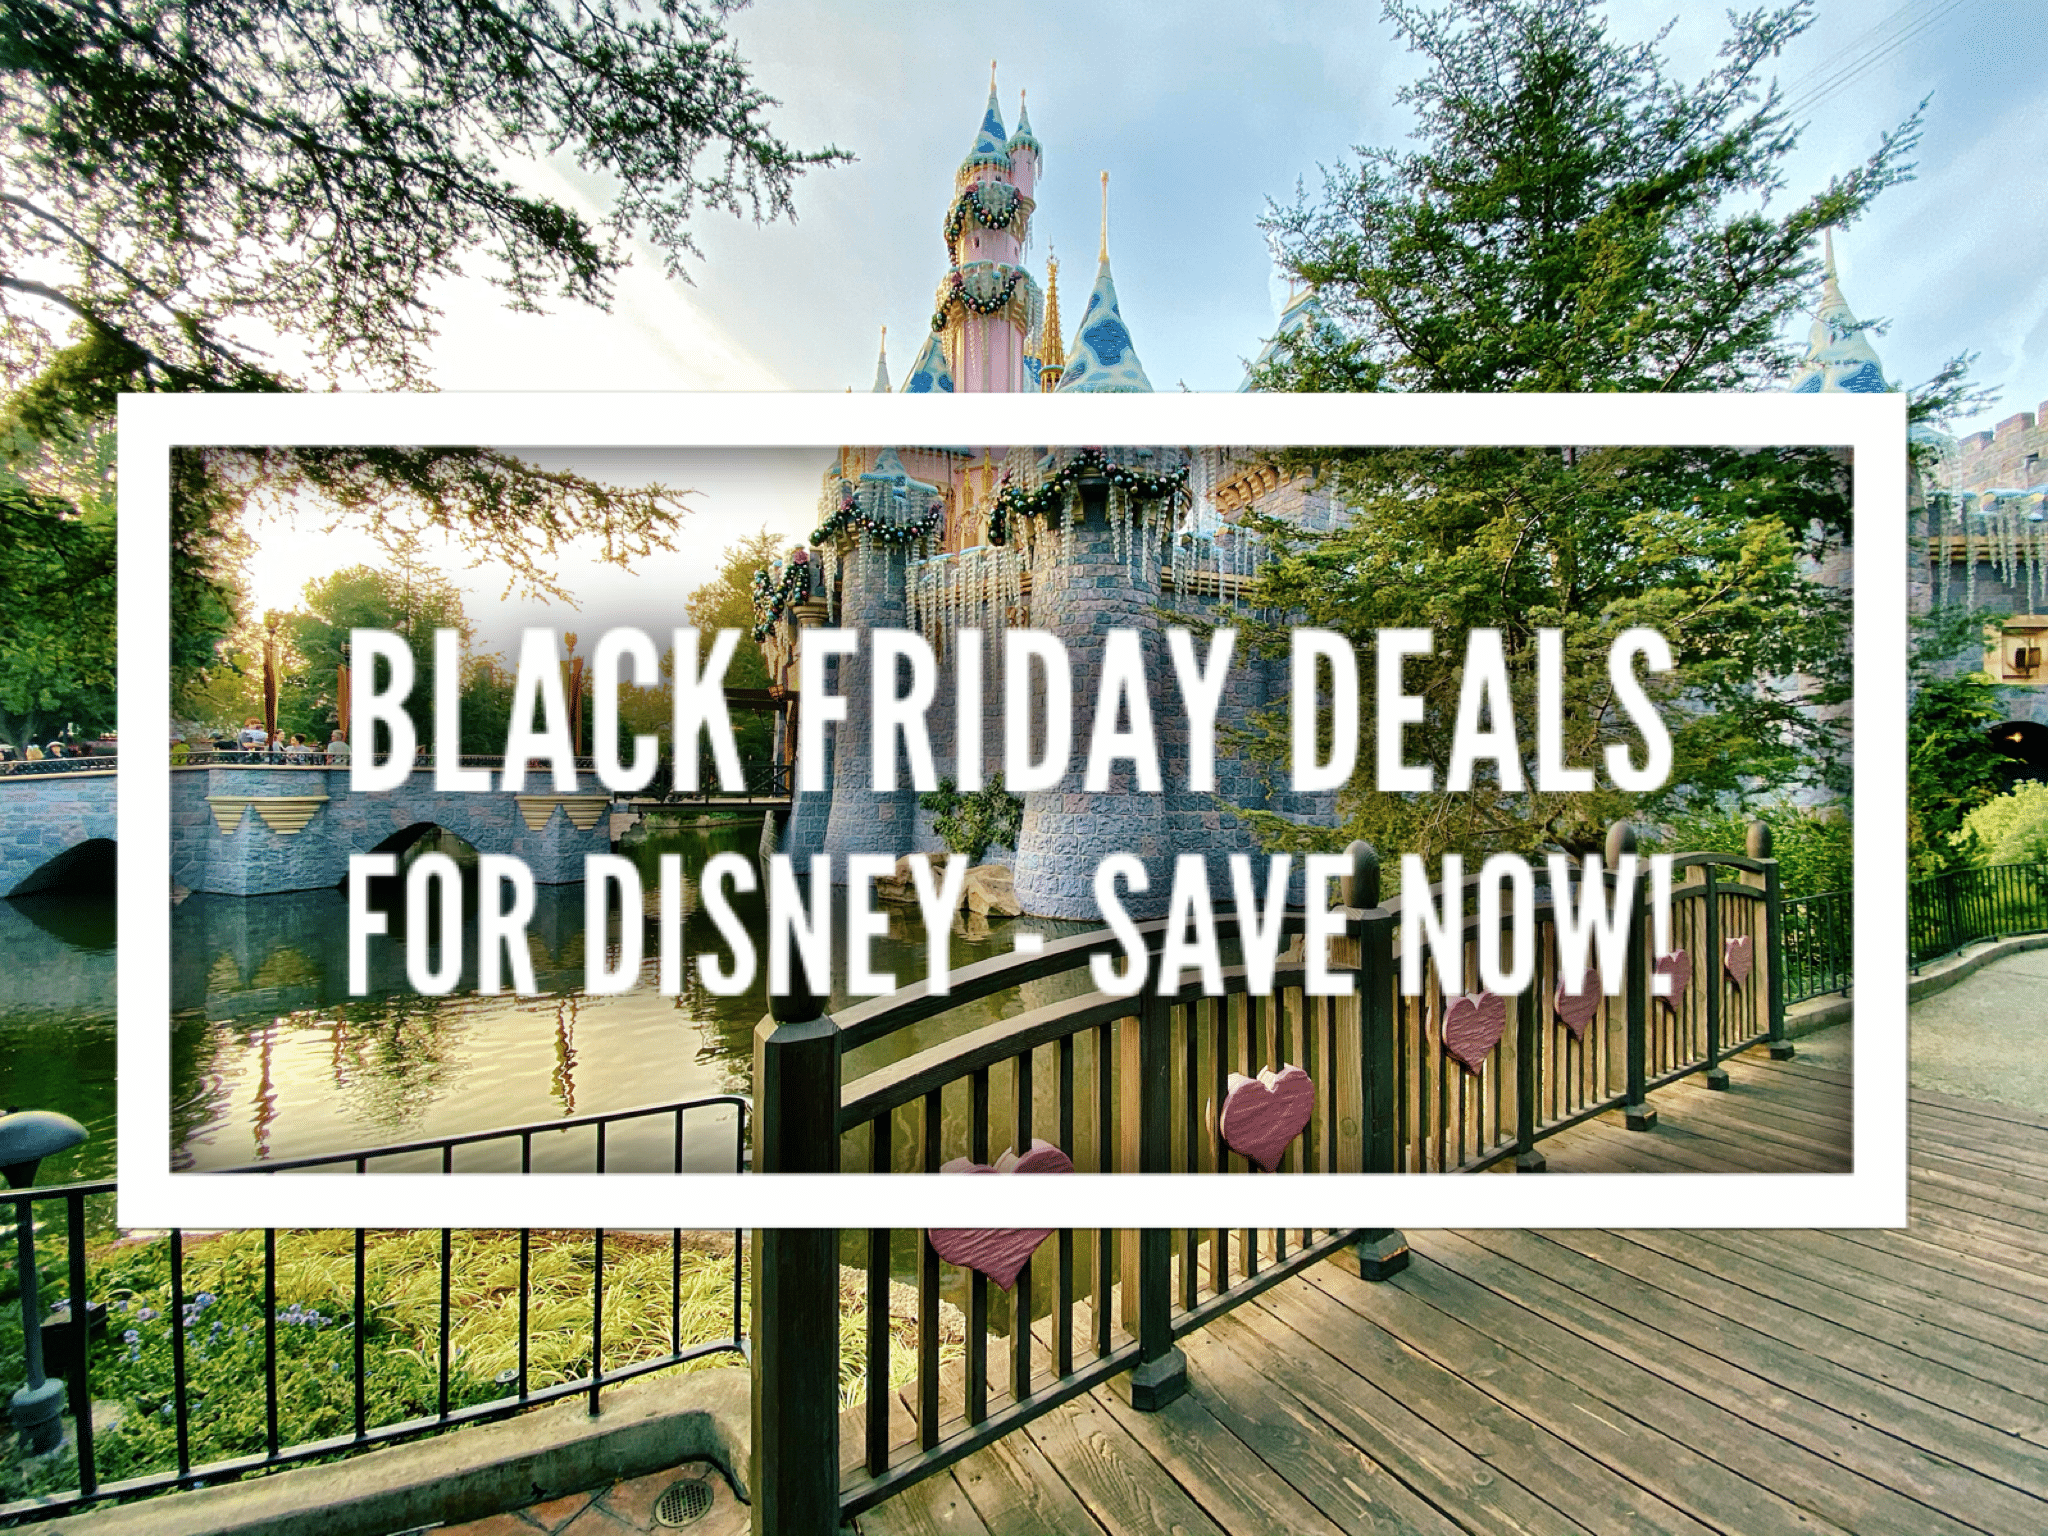 Black Friday Deals for Disney – Huge Savings!